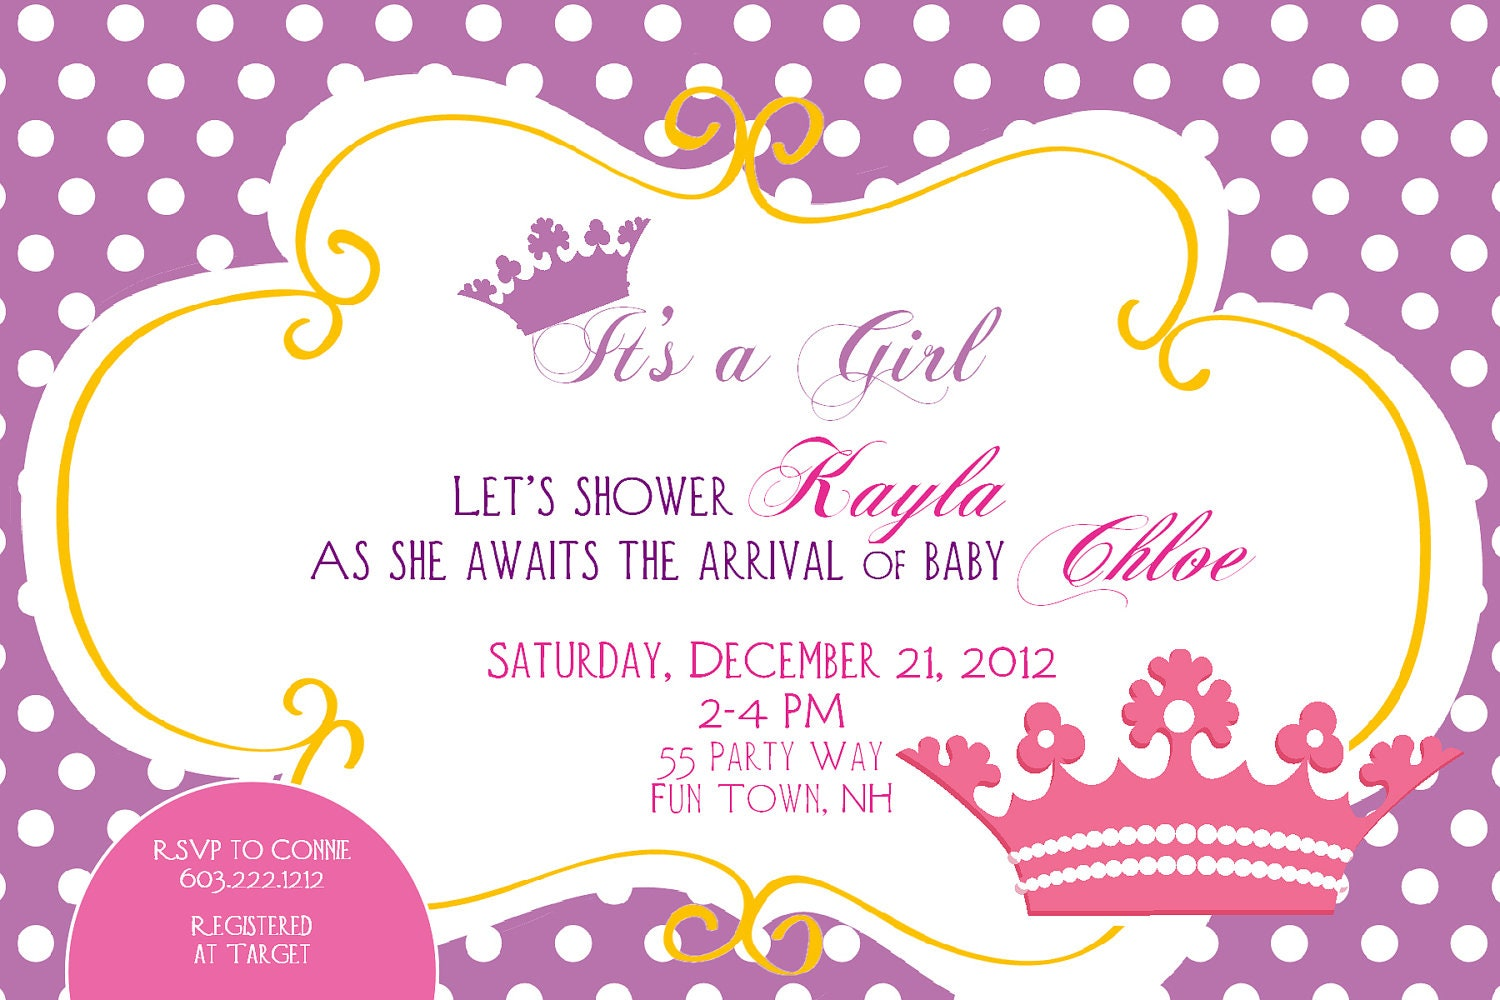 Vibrant image intended for free printable princess baby shower invitations